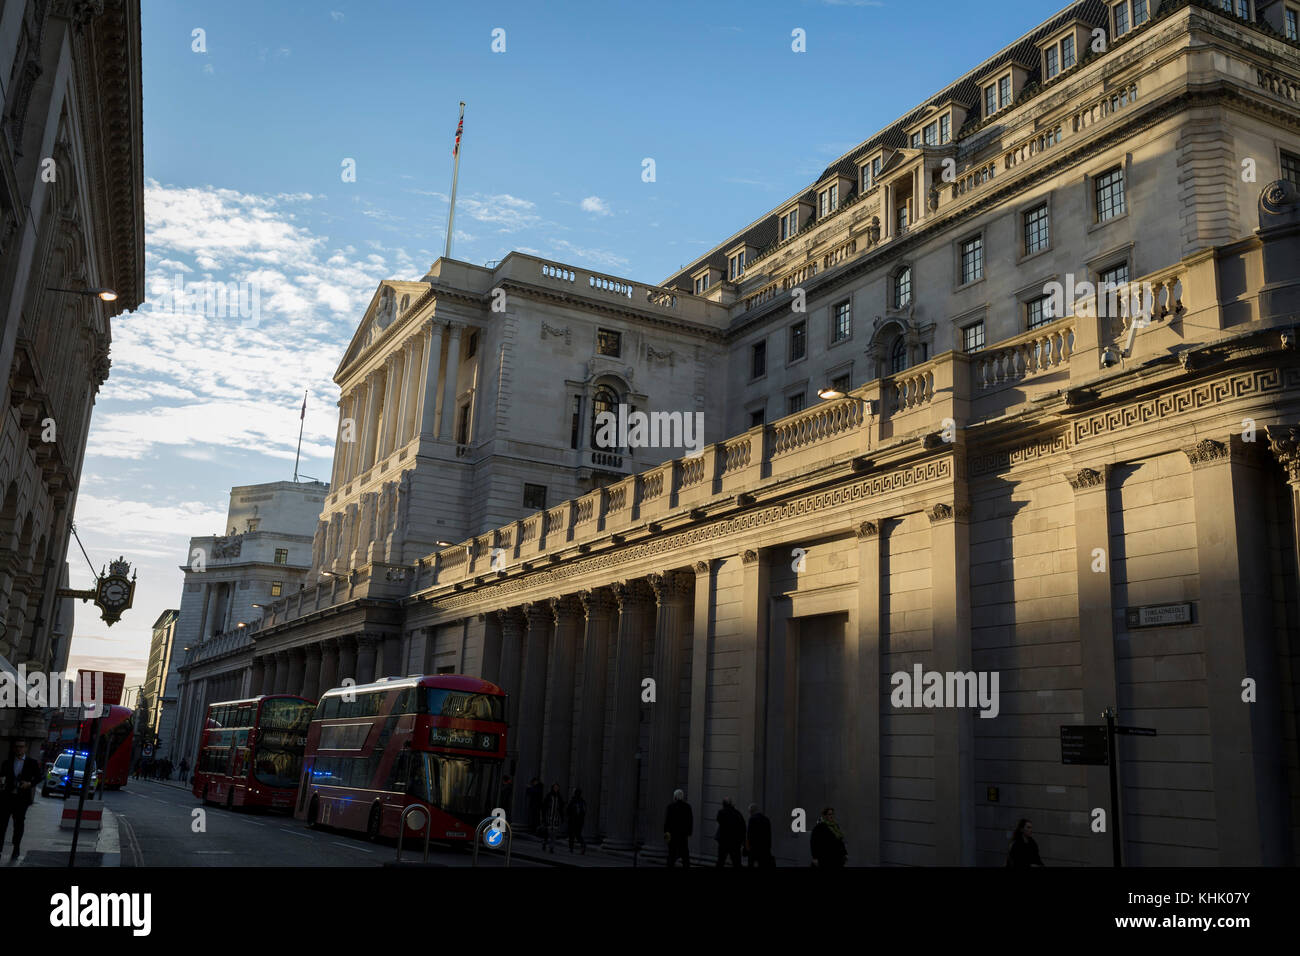 Exterior of the Bank of England on Threadneedle Street in the Square Mile, the capital's financial district, - Stock Image